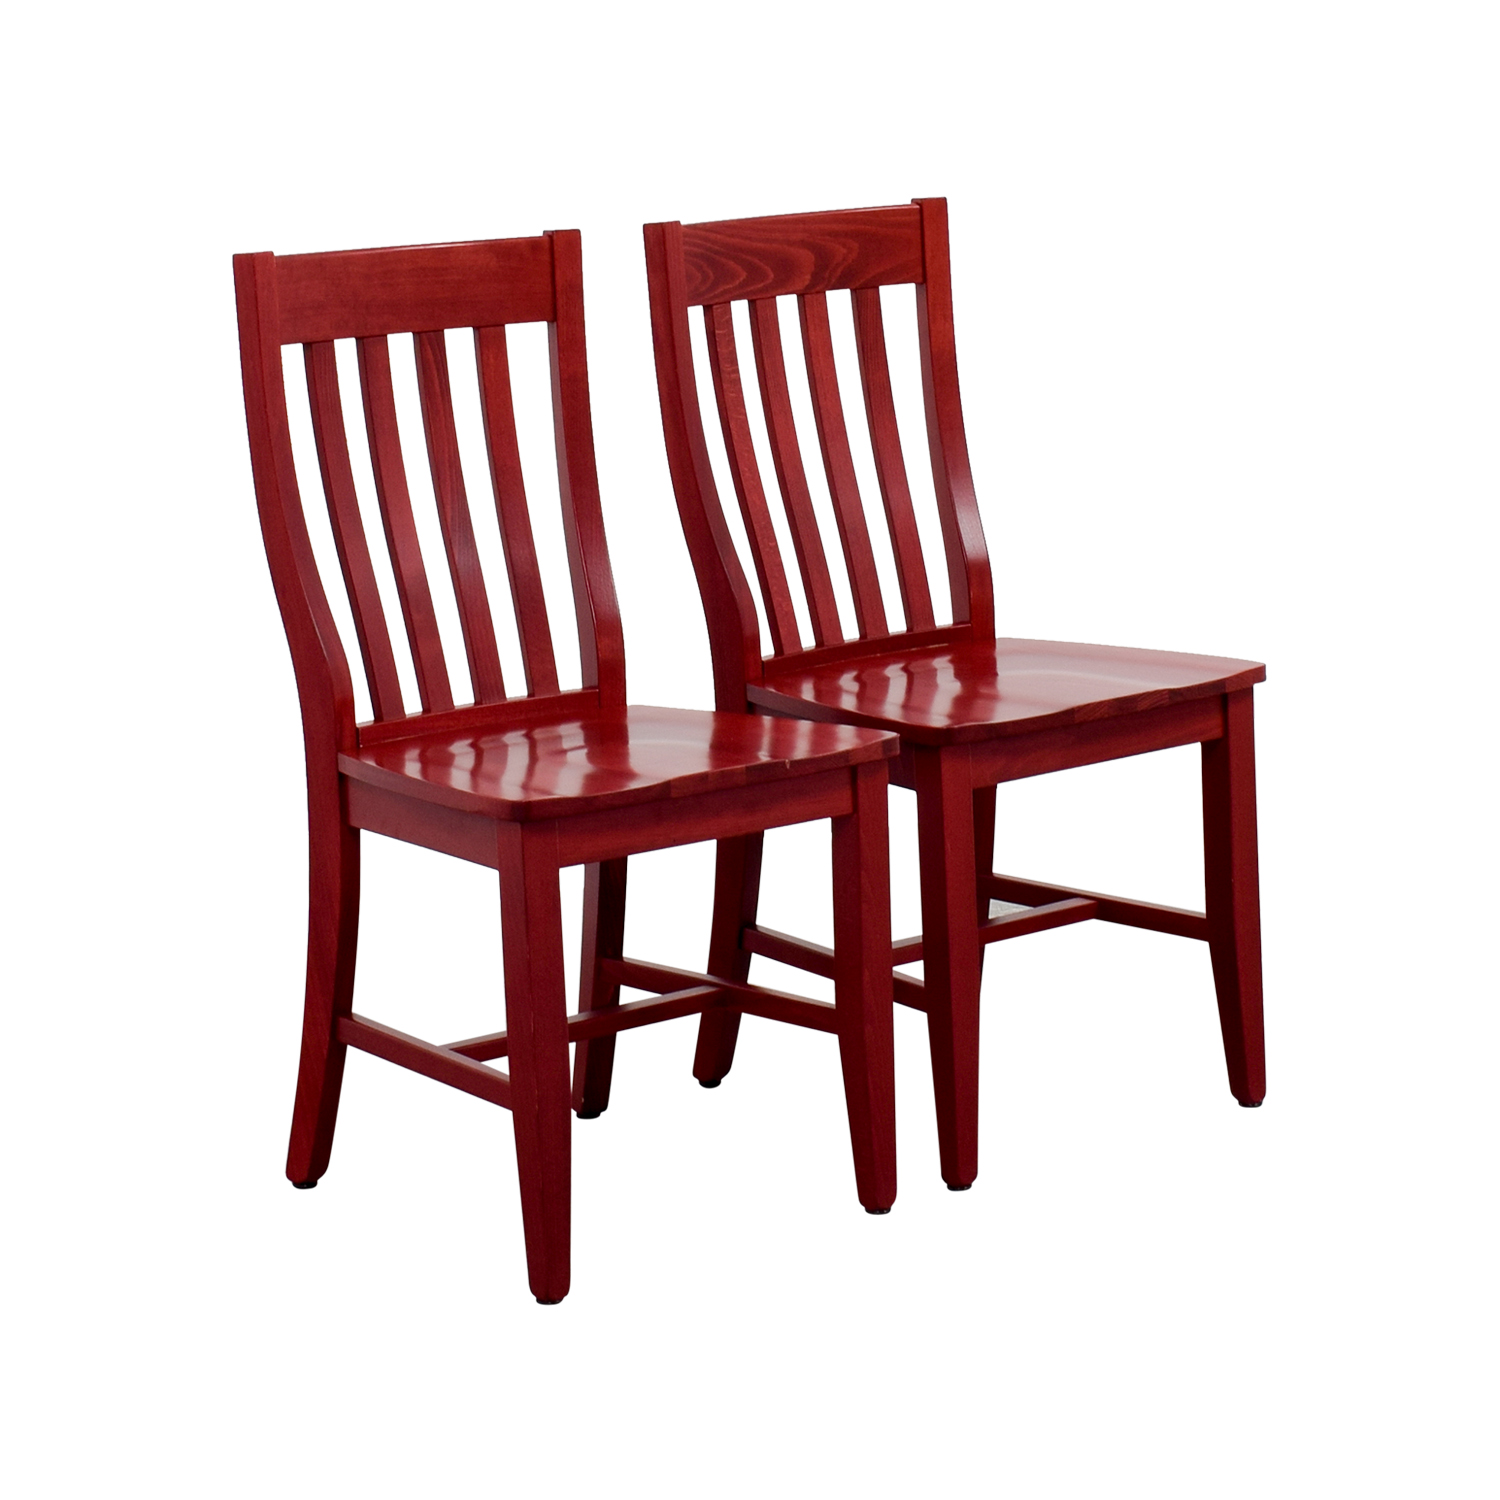 Pottery Barn Easy Chairs: Pottery Barn Pottery Barn Schoolhouse Chairs